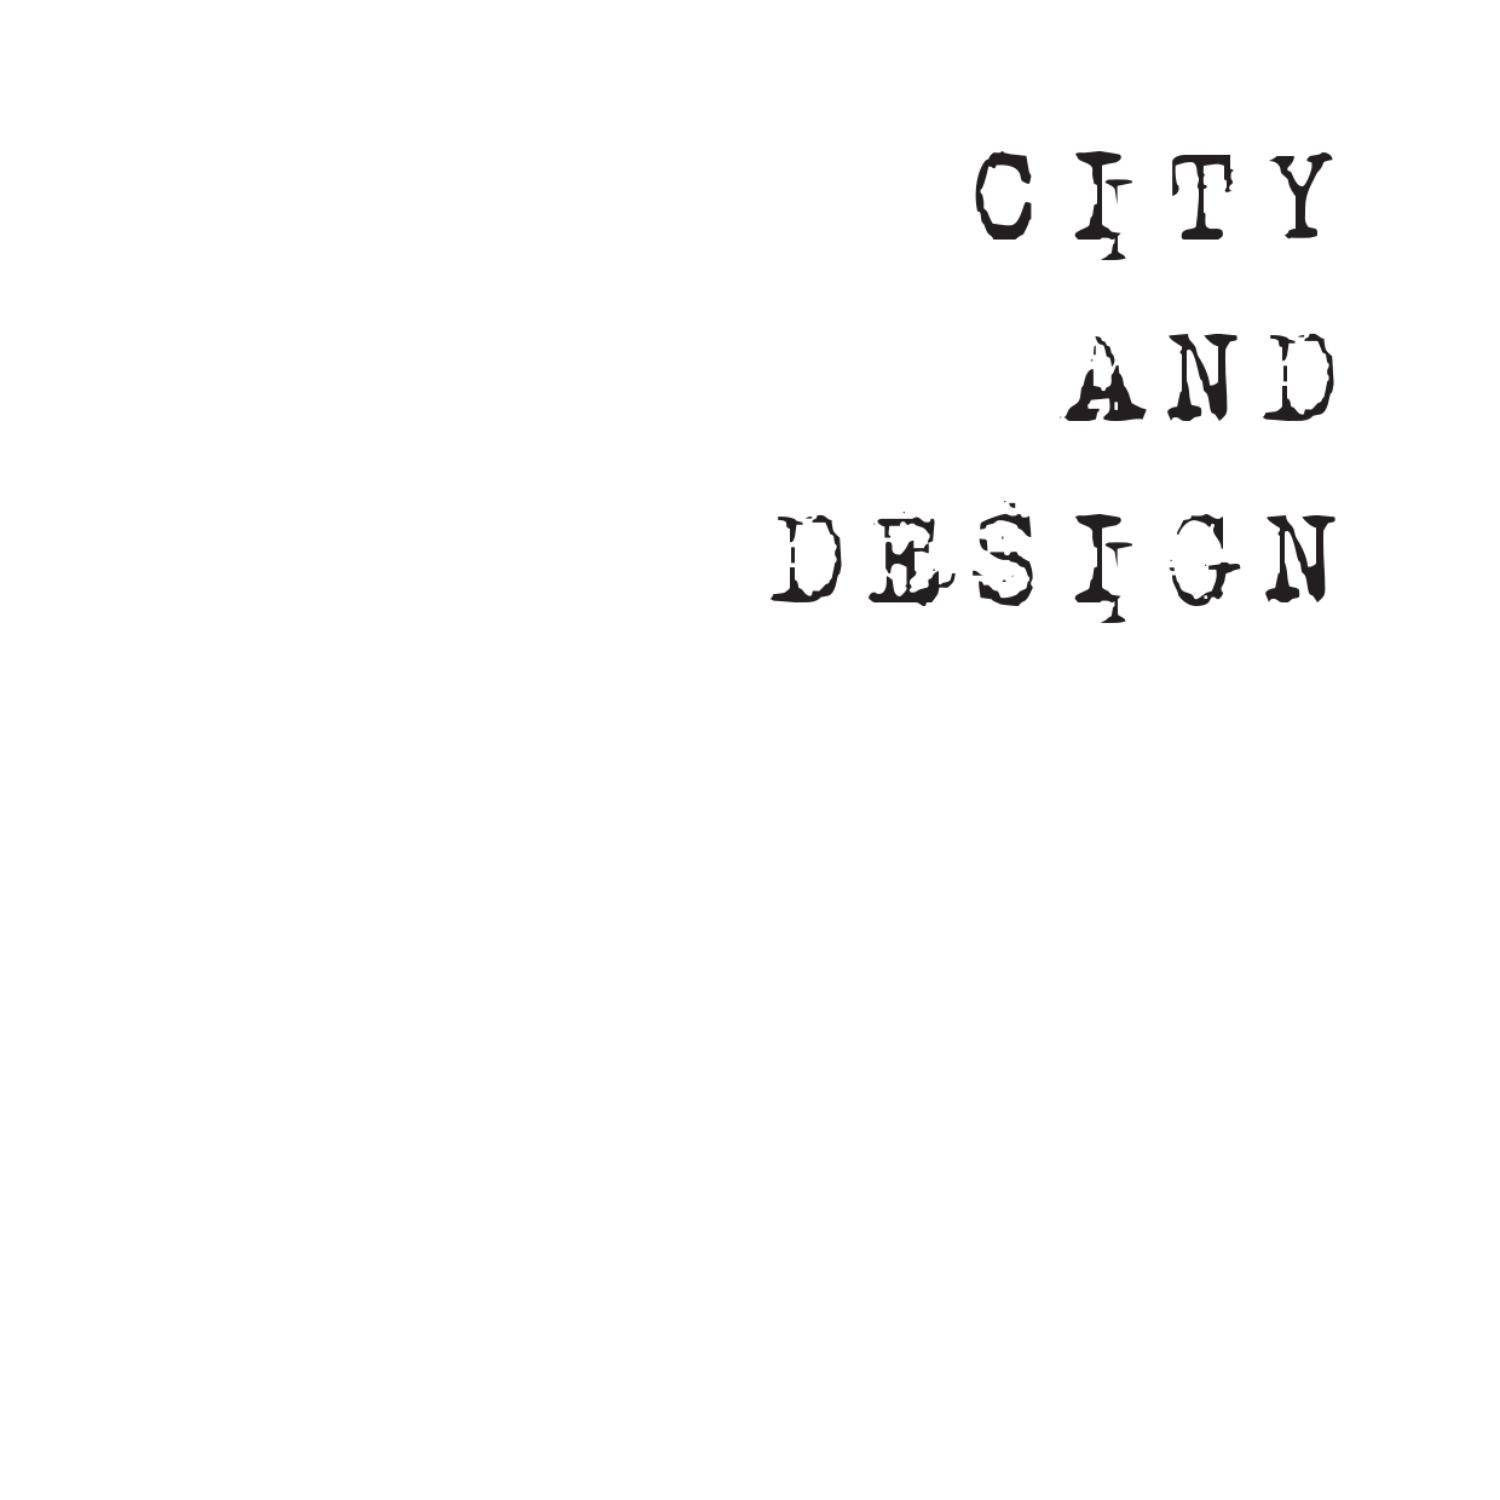 Margelle Roc De France city and designpublic art & public space - issuu